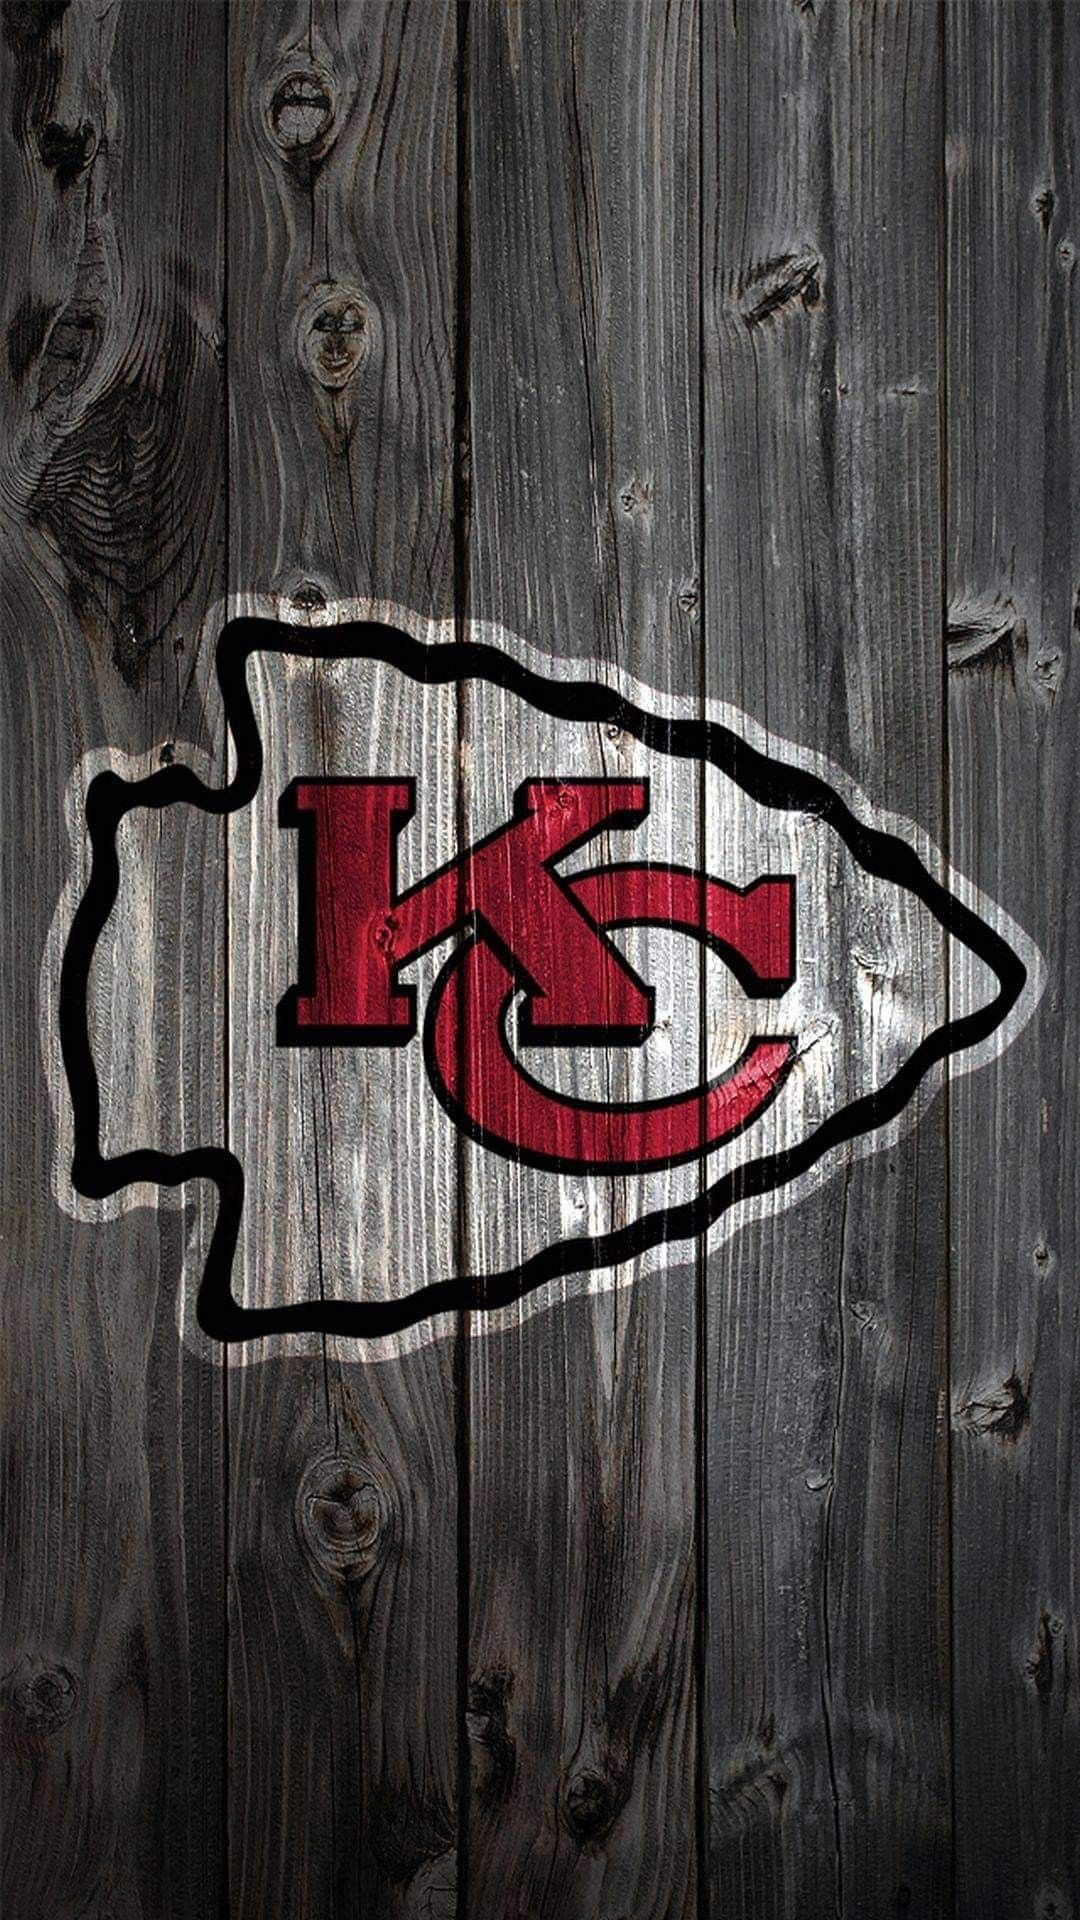 Pin By Amanda Kathleen On Chiefs In 2020 Chiefs Wallpaper Kansas City Chiefs Kansas City Chiefs Logo